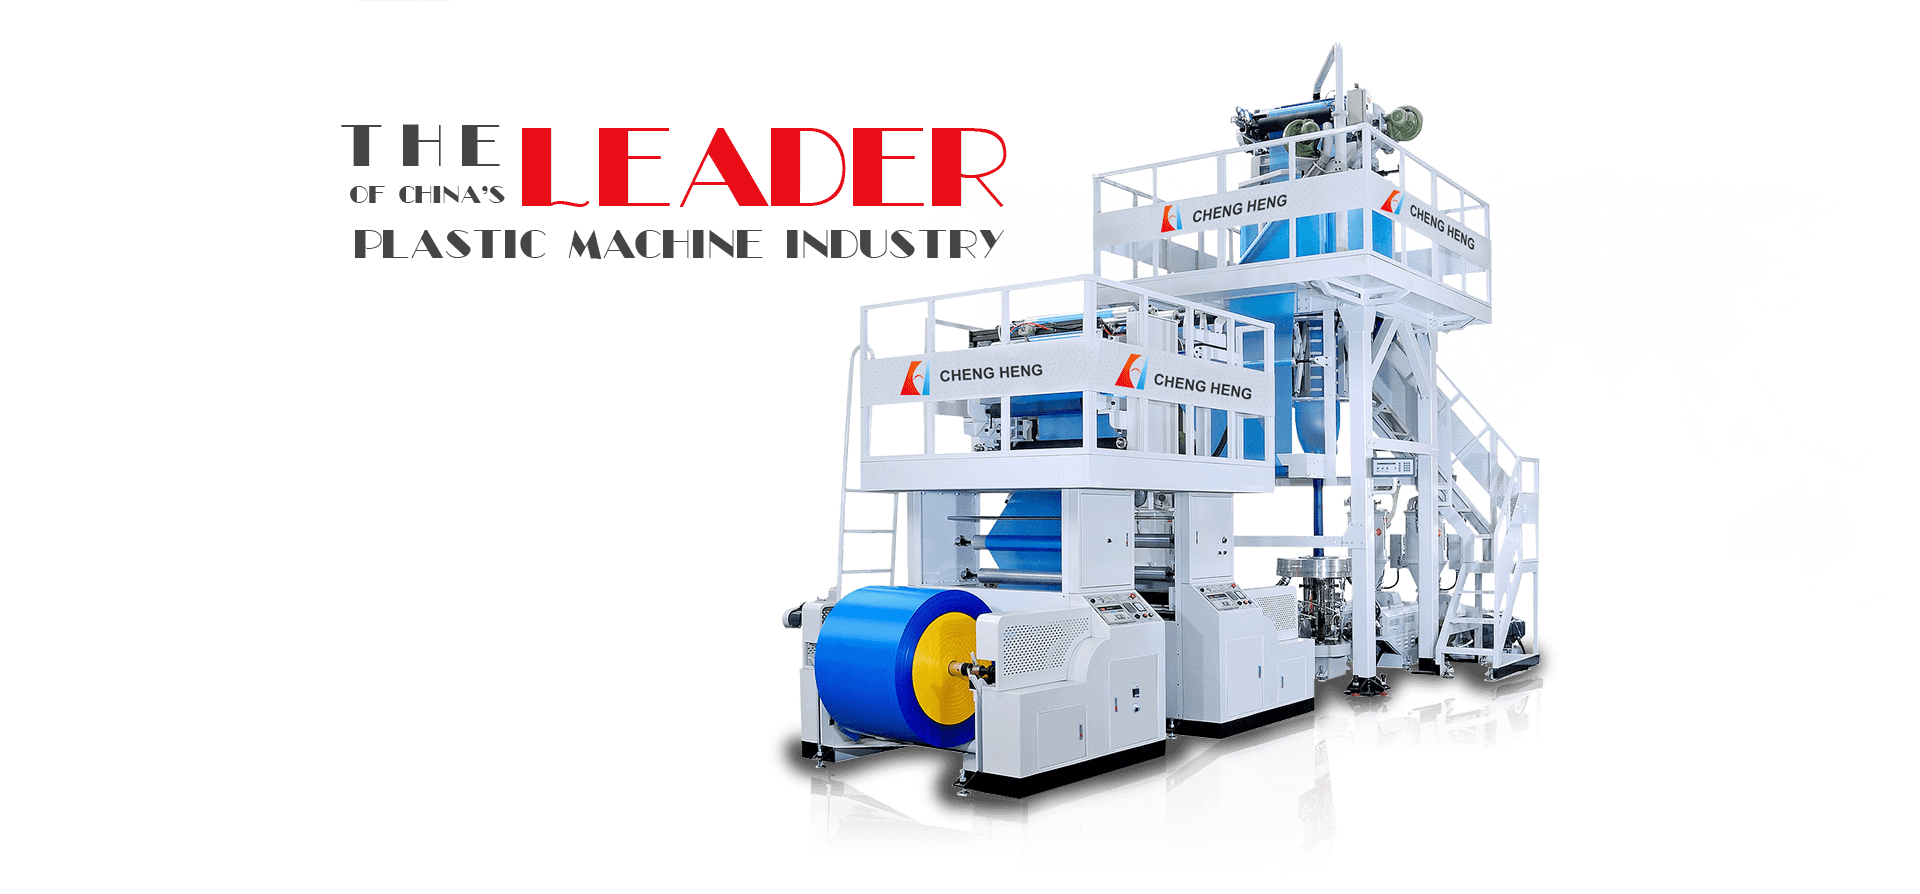 The Leader Of China Plastic Machine Industry